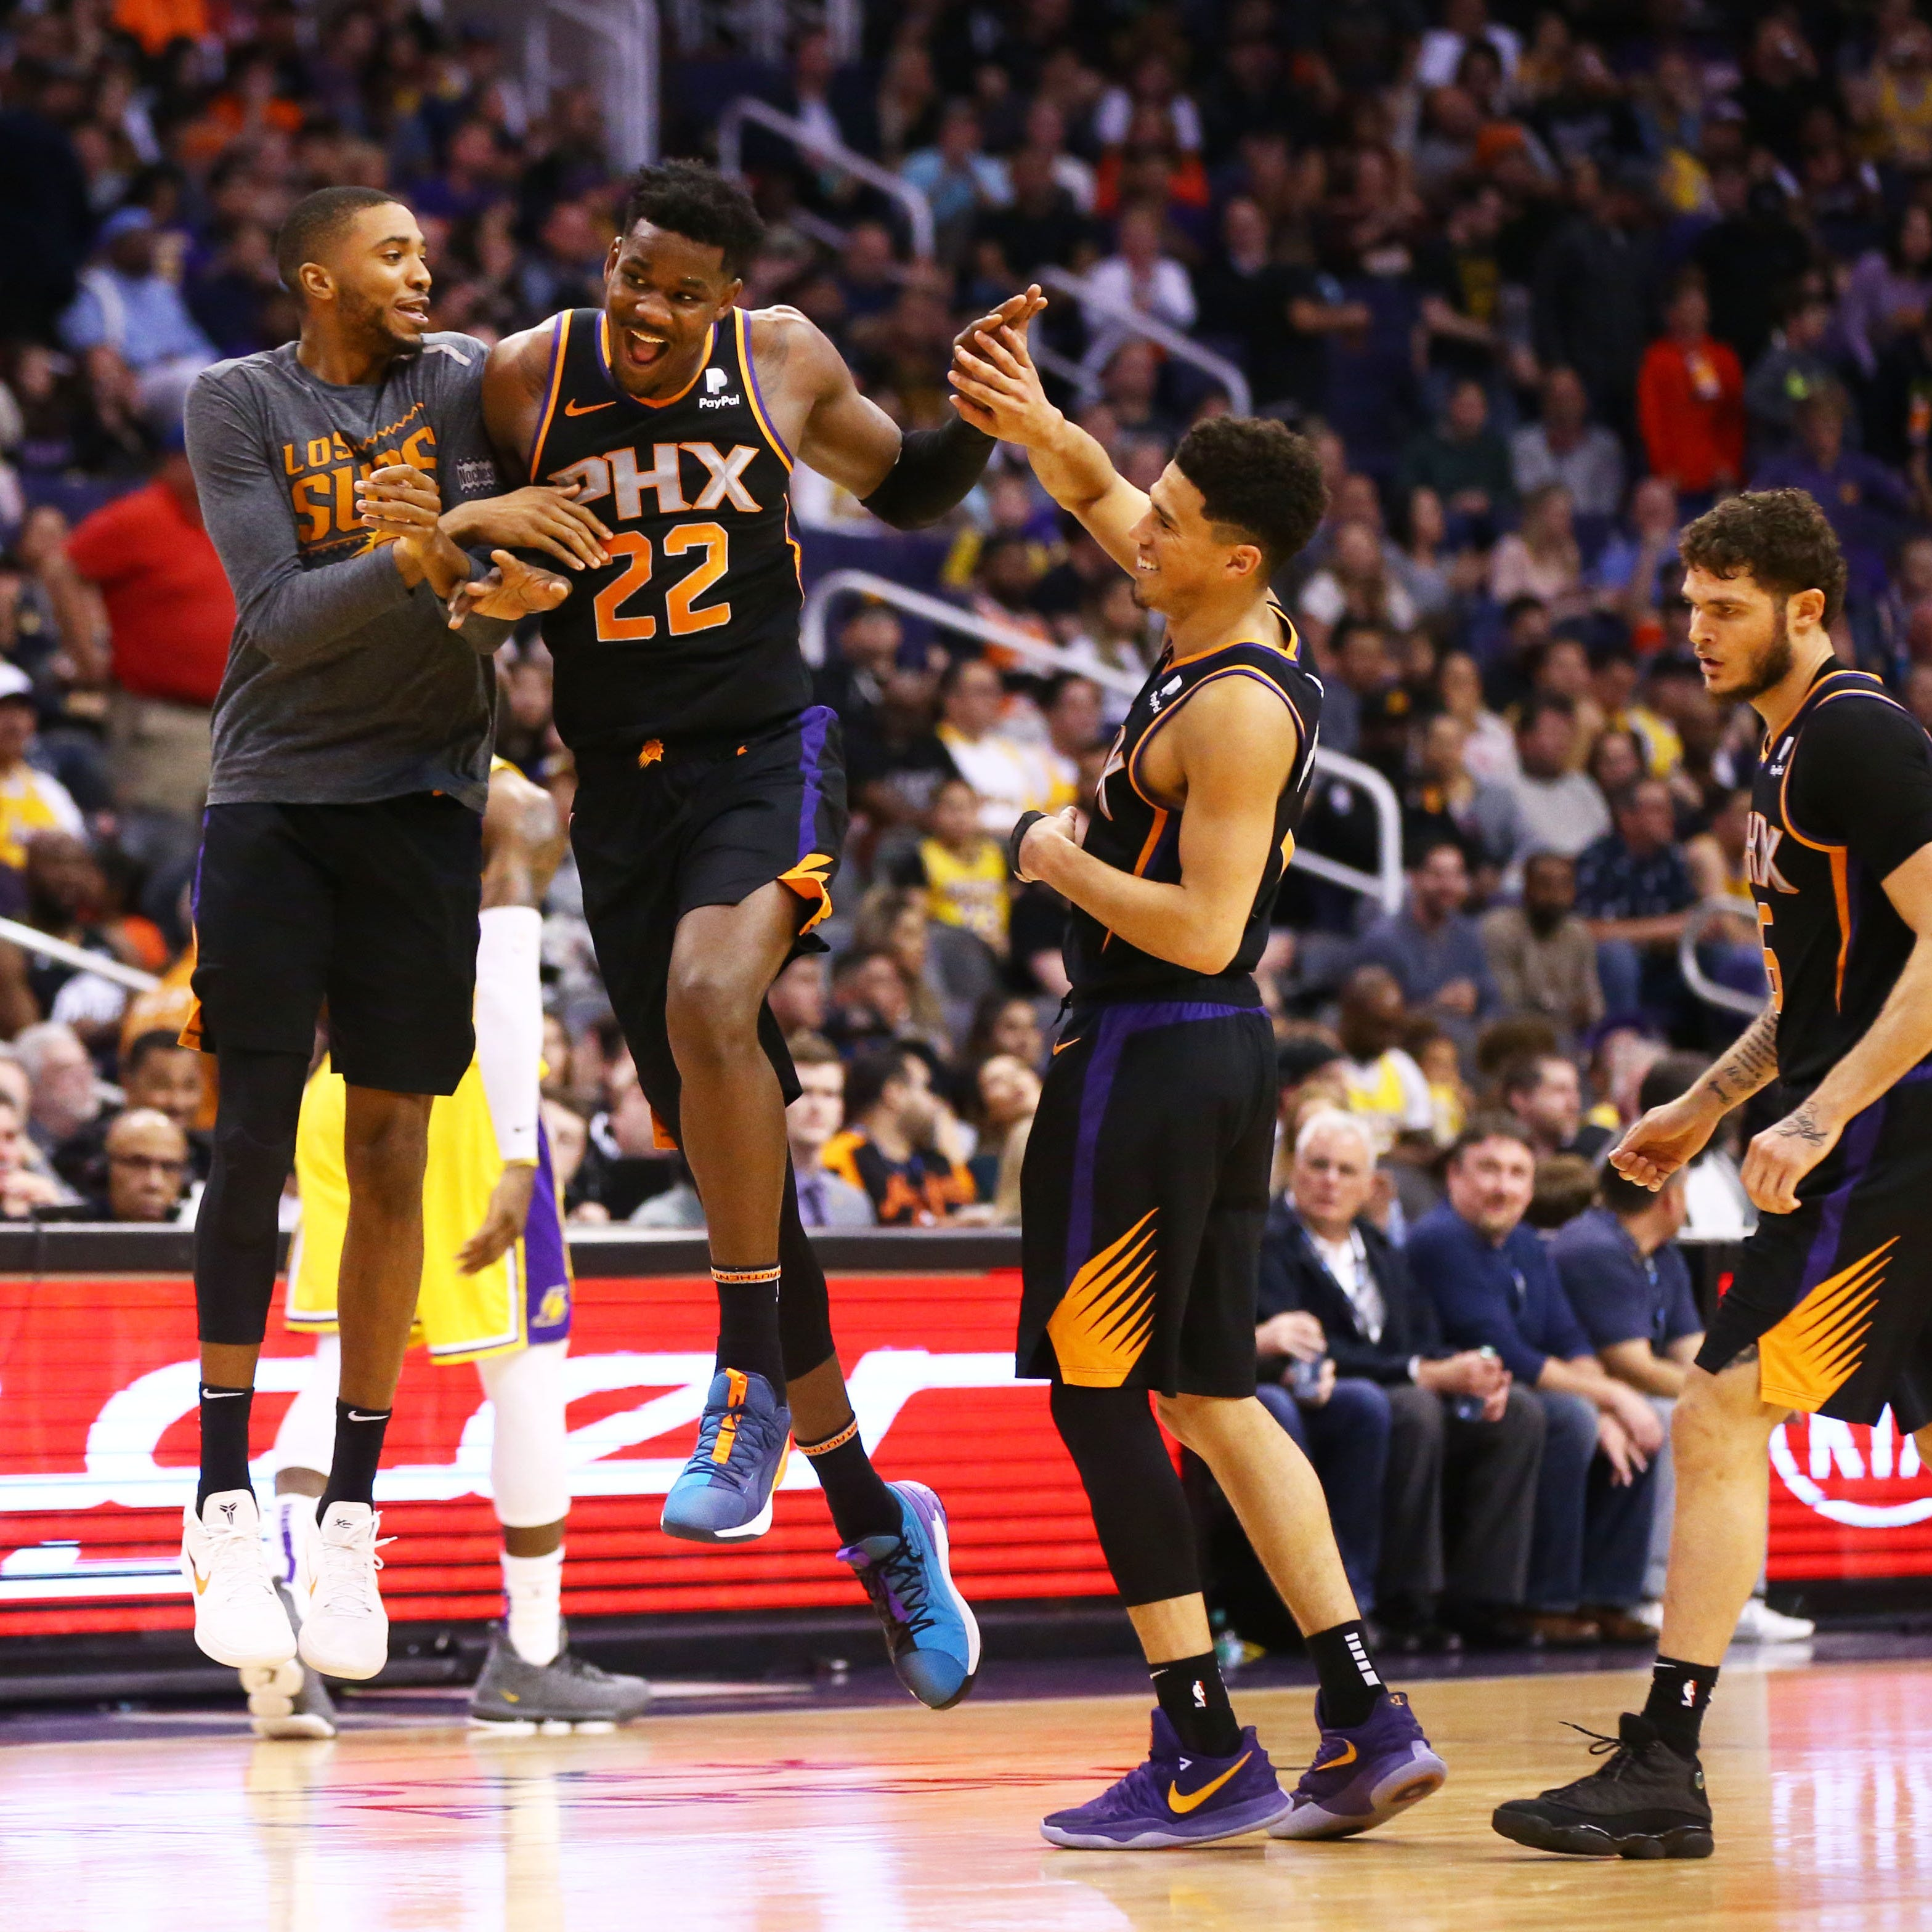 Deandre Ayton delivers in Suns win over LeBron, Lakers